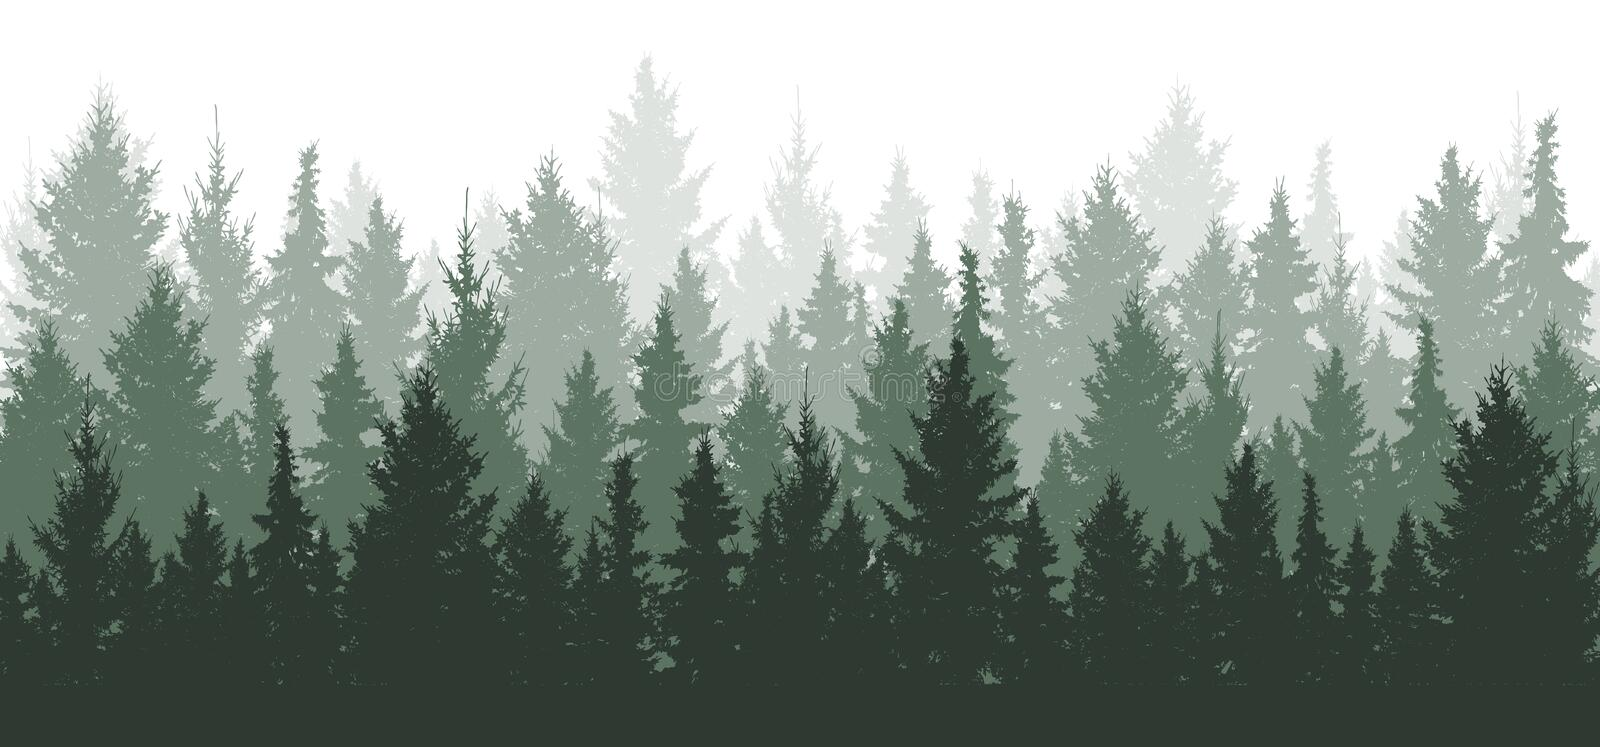 Forest background, nature, landscape. Evergreen coniferous trees. Pine and spruce and christmas tree. Silhouette vector vector illustration